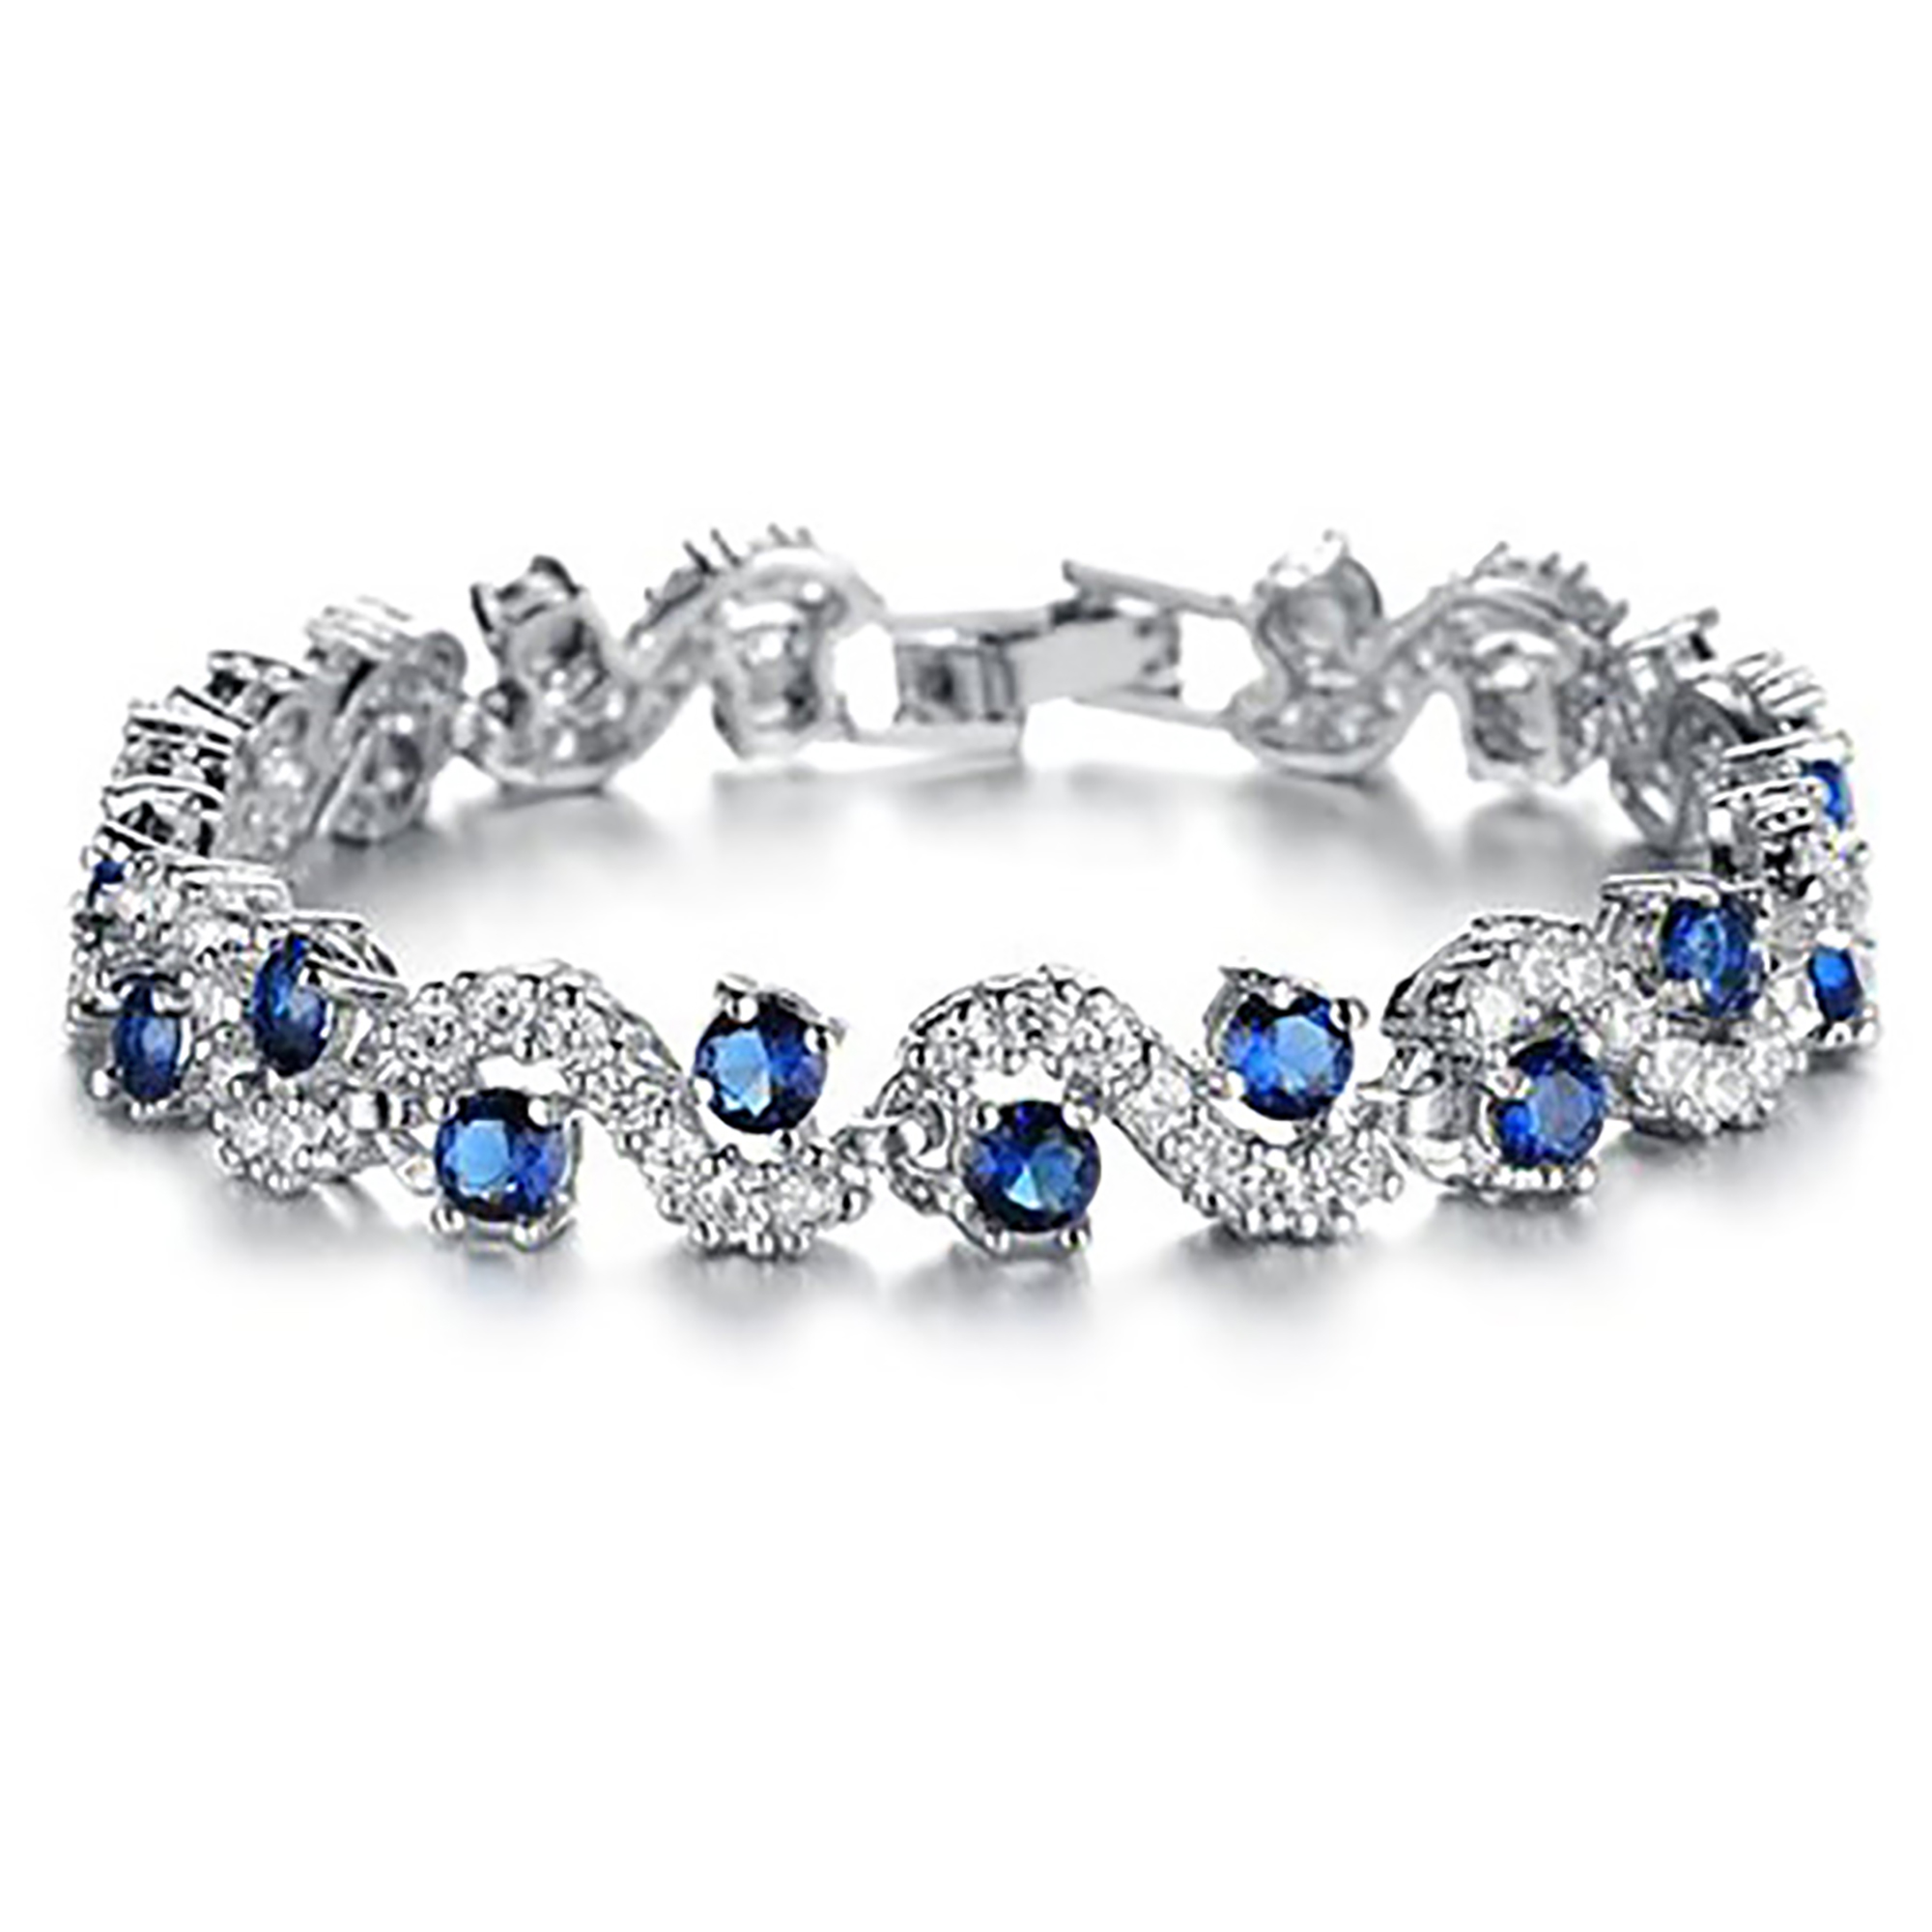 Fashionable Blue Sapphire Bracelet Jewelry in Two Lengths With Gift Box by Gifts Are Blue